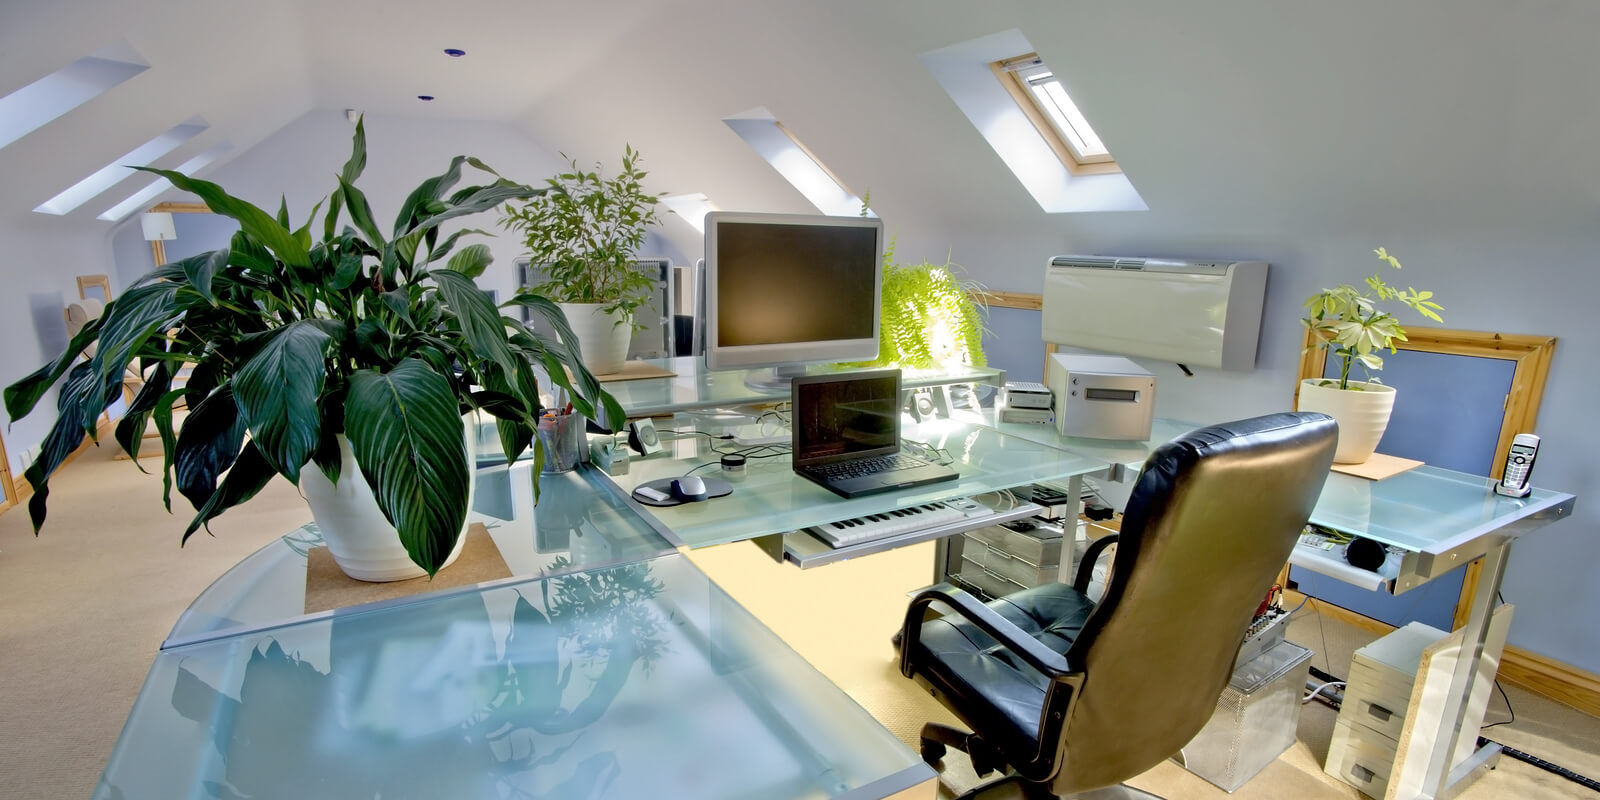 Setting Up Your Workspace According to Your Myers-Briggs Personality